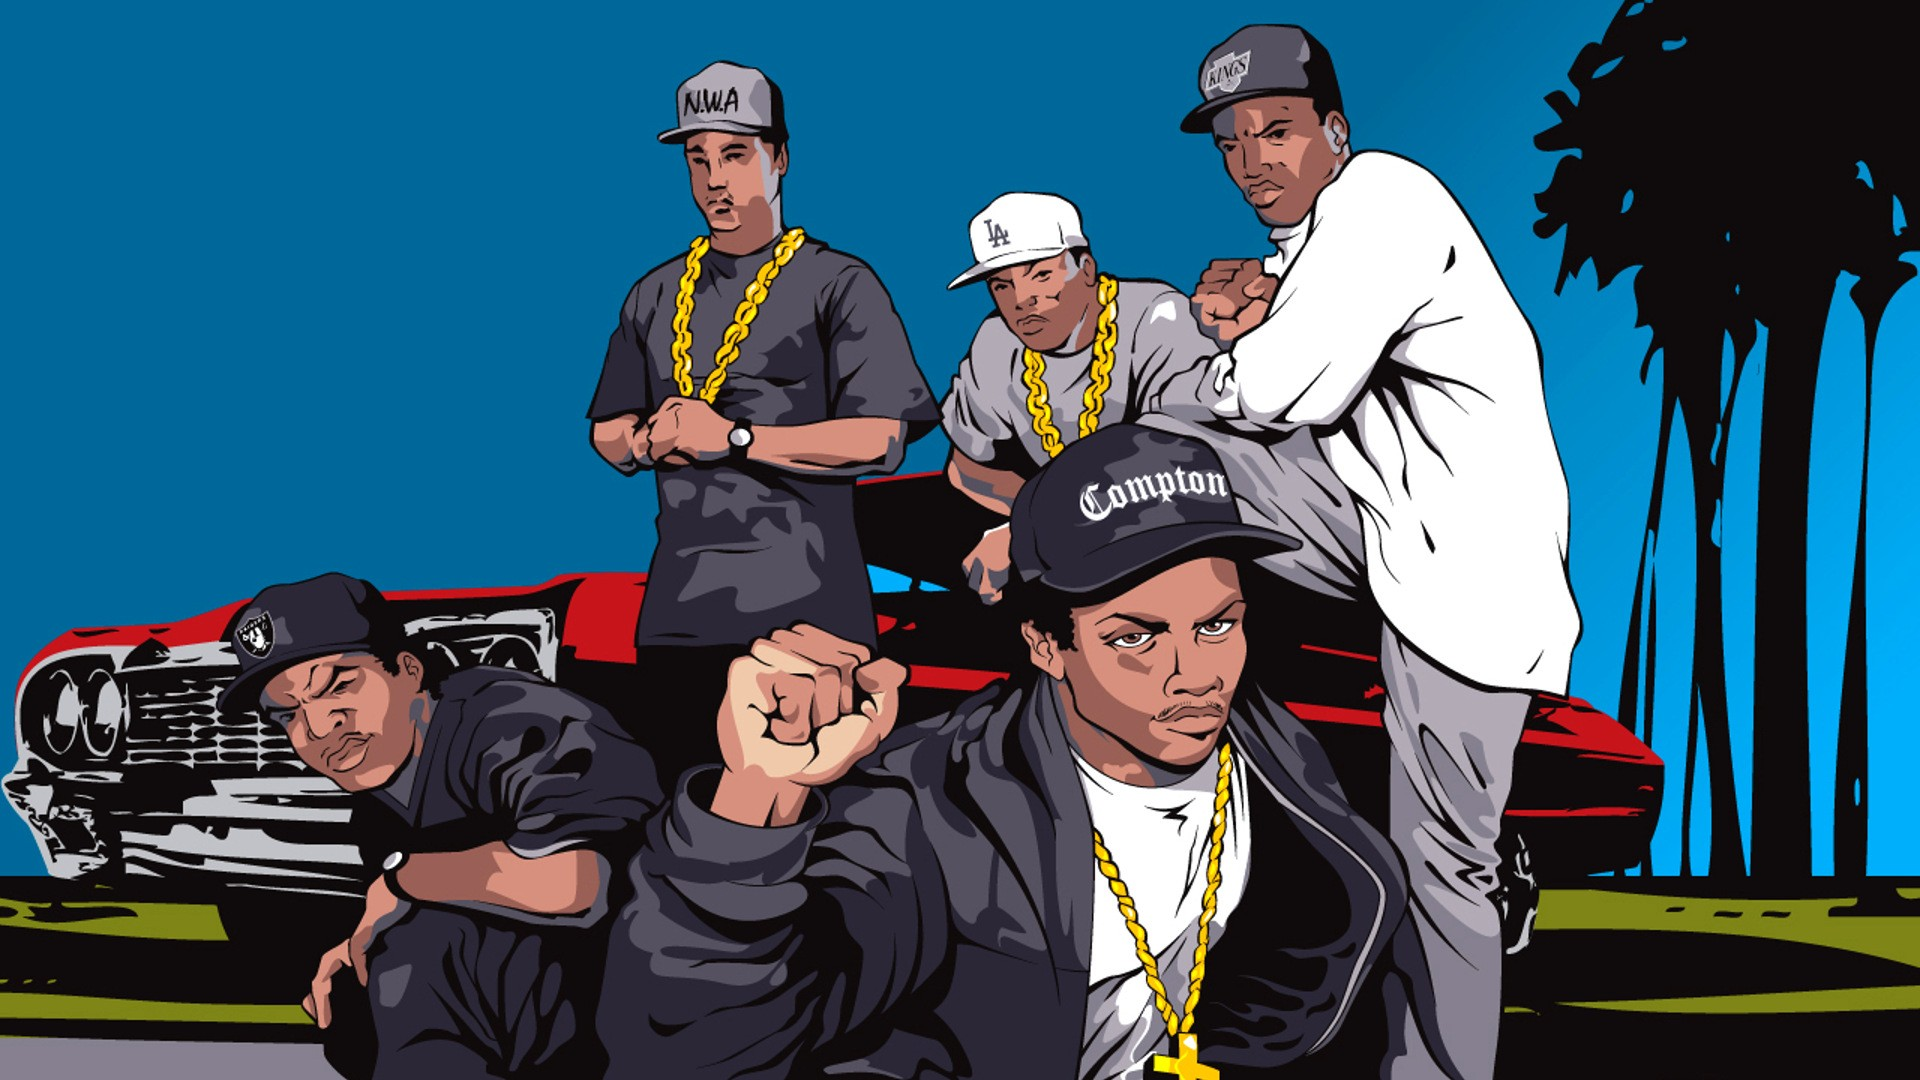 Hip Hop Wallpaper Iphone 7 Nwa Wallpaper 183 ① Download Free Full Hd Backgrounds For